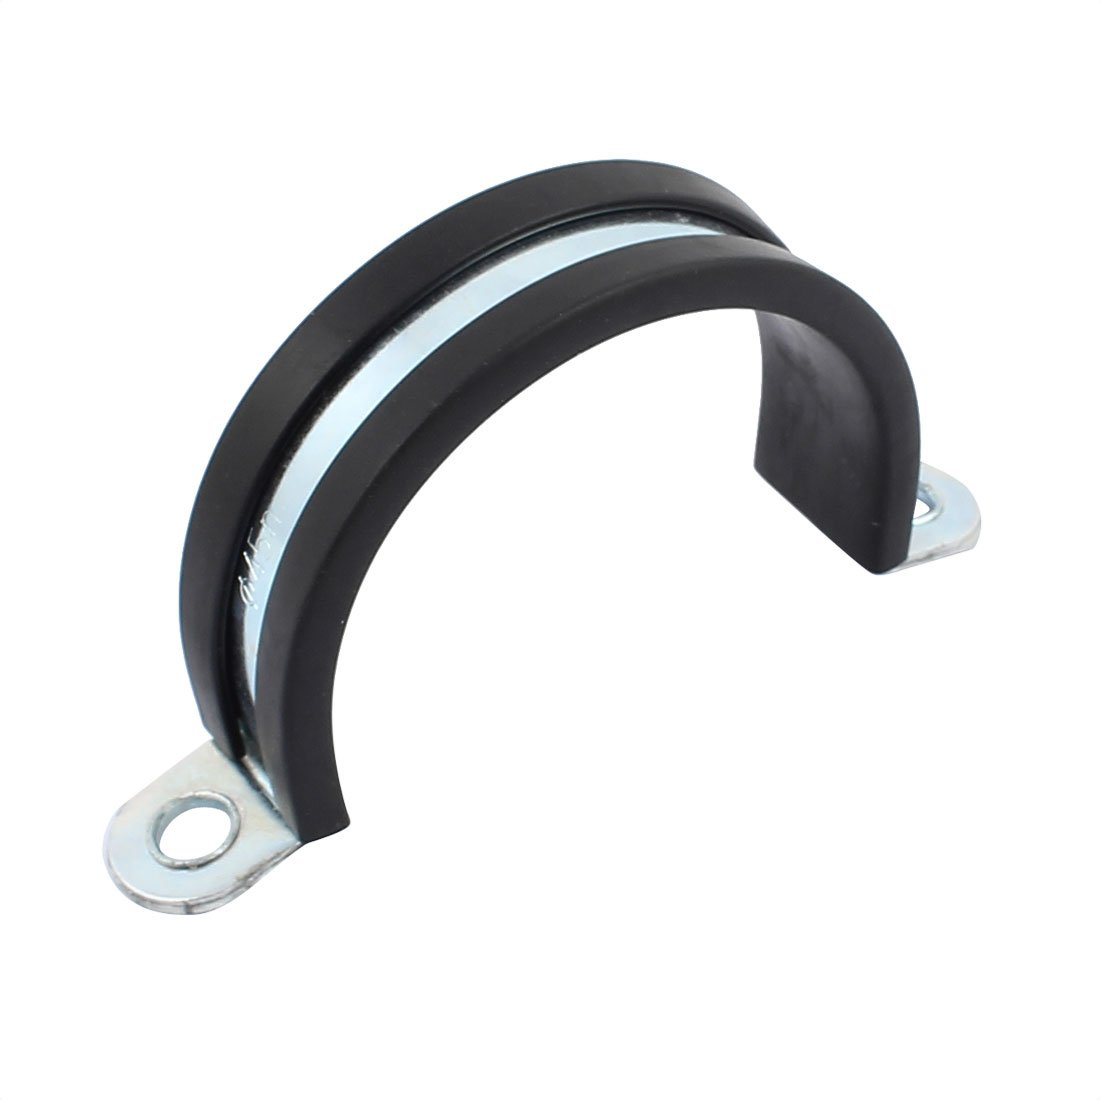 sourcingmap 45mm Dia EPDM Rubber Lined U Shaped Zinc Plated Pipe Clips Hose Tube Clamp a17010900ux0821